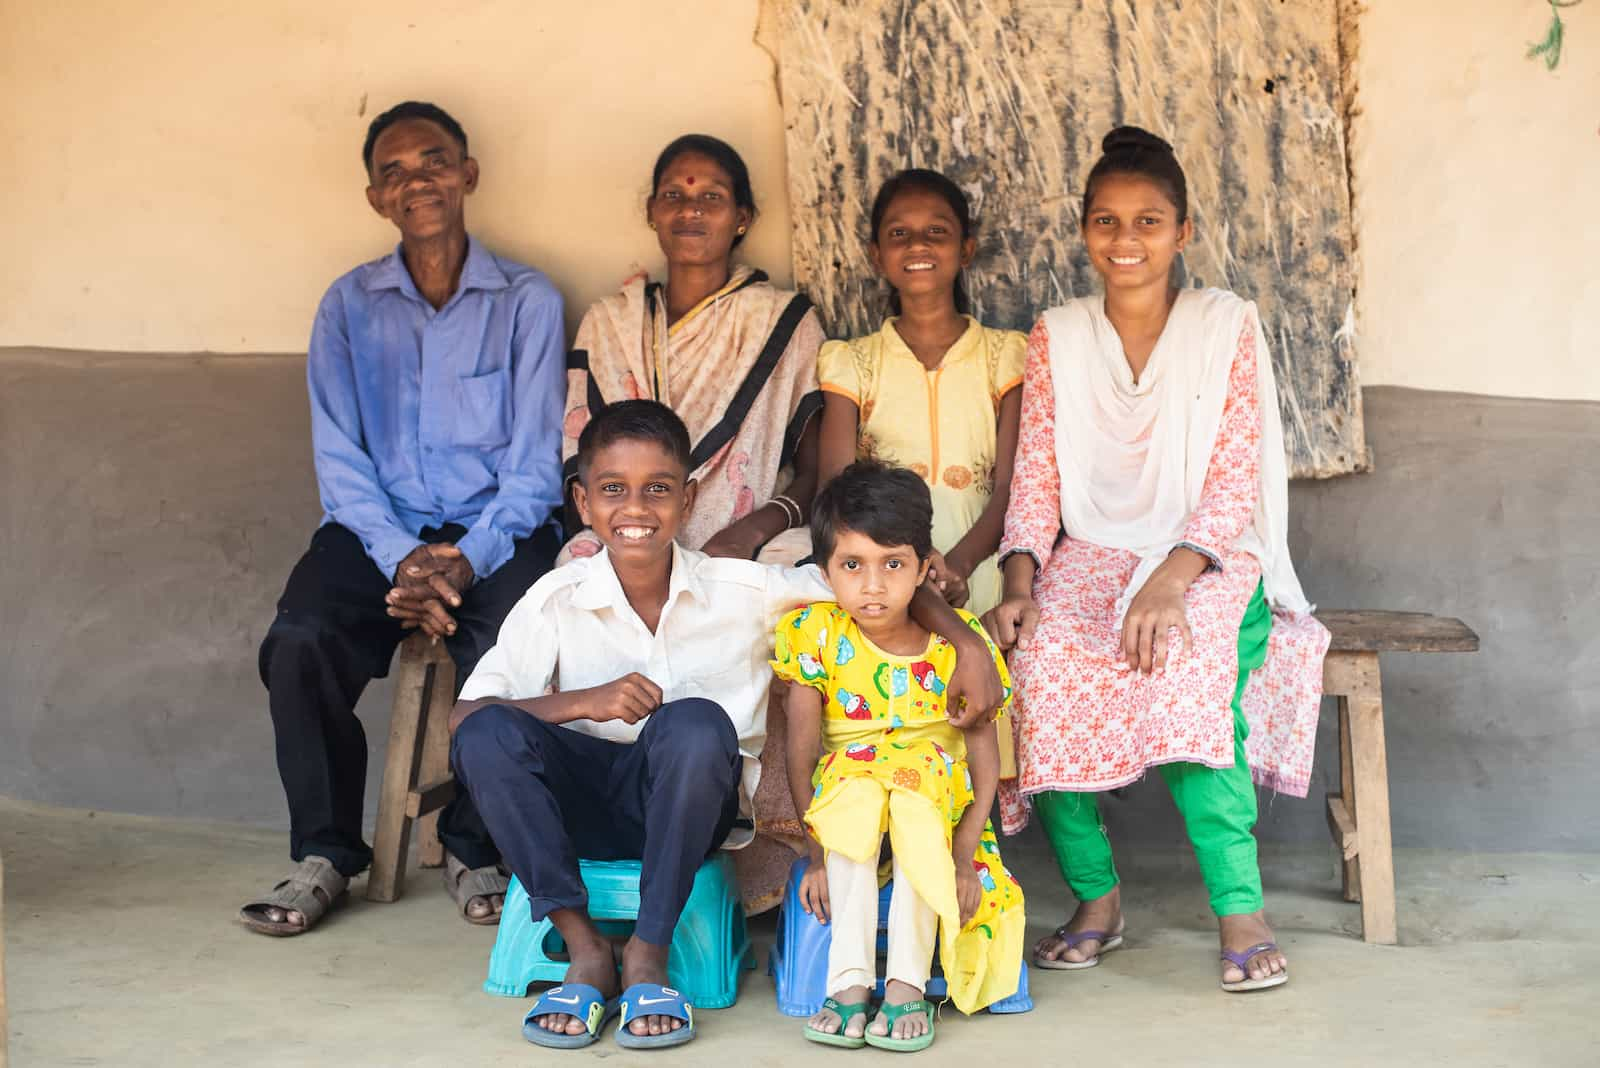 A family of six sits outside, smiling, including an older man in blue, a woman wearing a tan sari, a girl in a yellow dress, and another girl in a pink and green outfit. Below them are a young boy in a white shirt and blue pants and a young girl in a yellow dress.